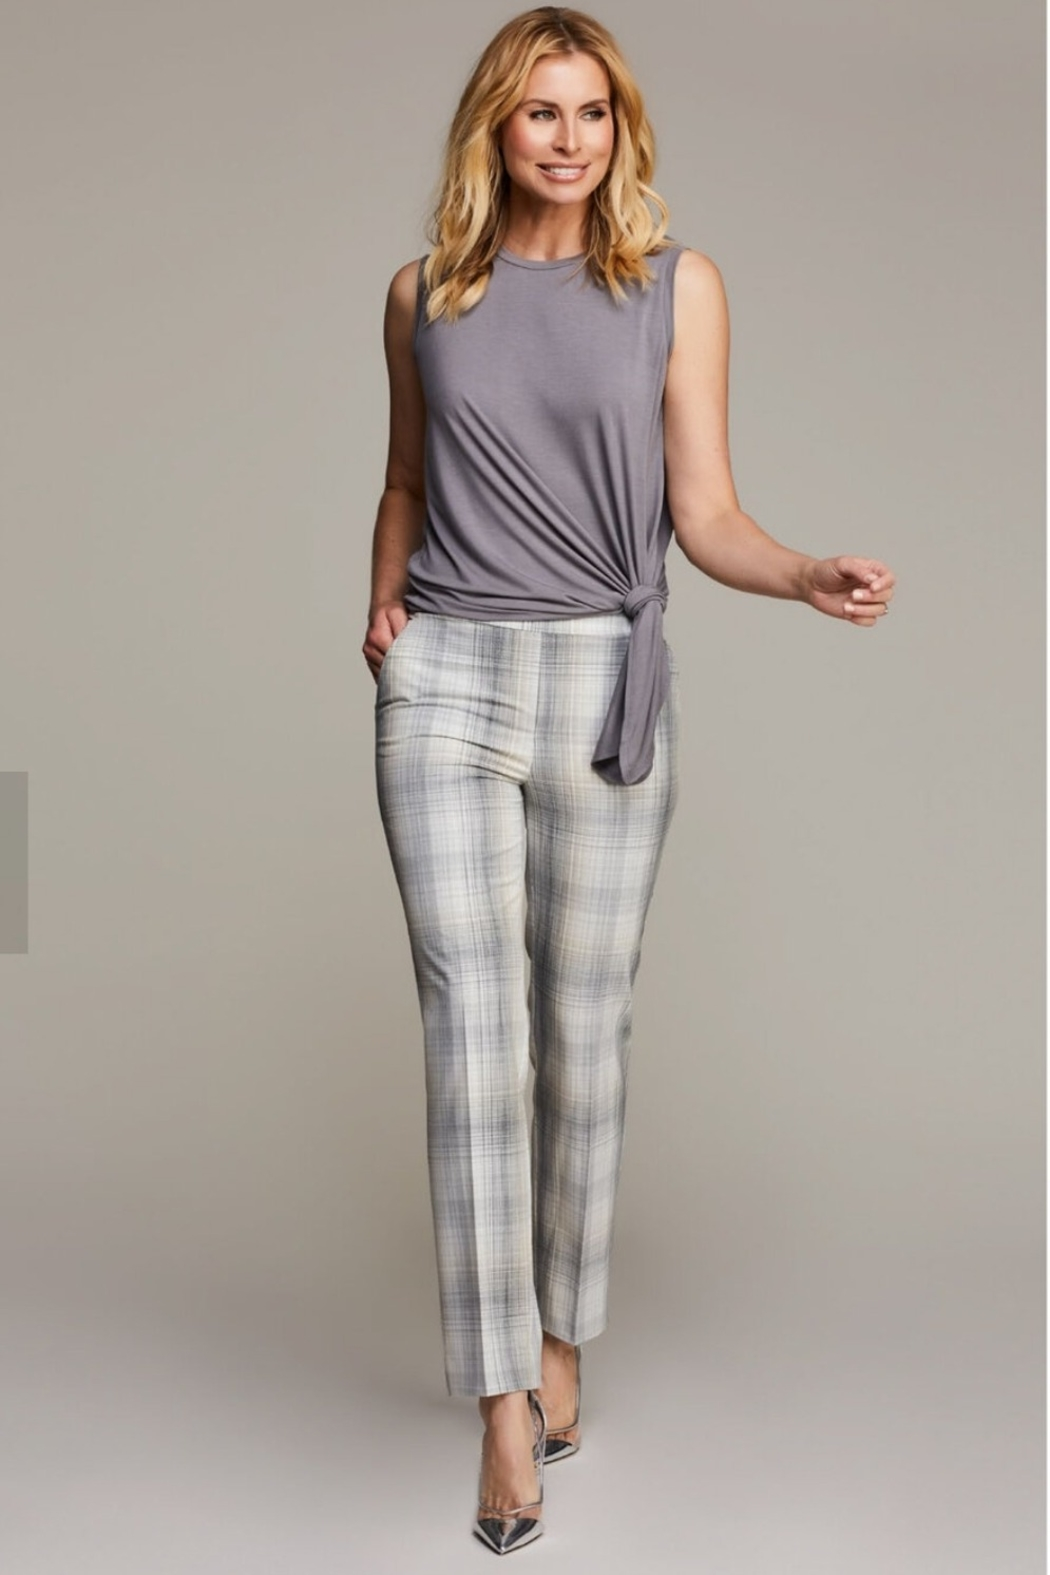 Up! Sketch Plaid Eco-Friendly Pull-On Trouser, Haze - Main Image